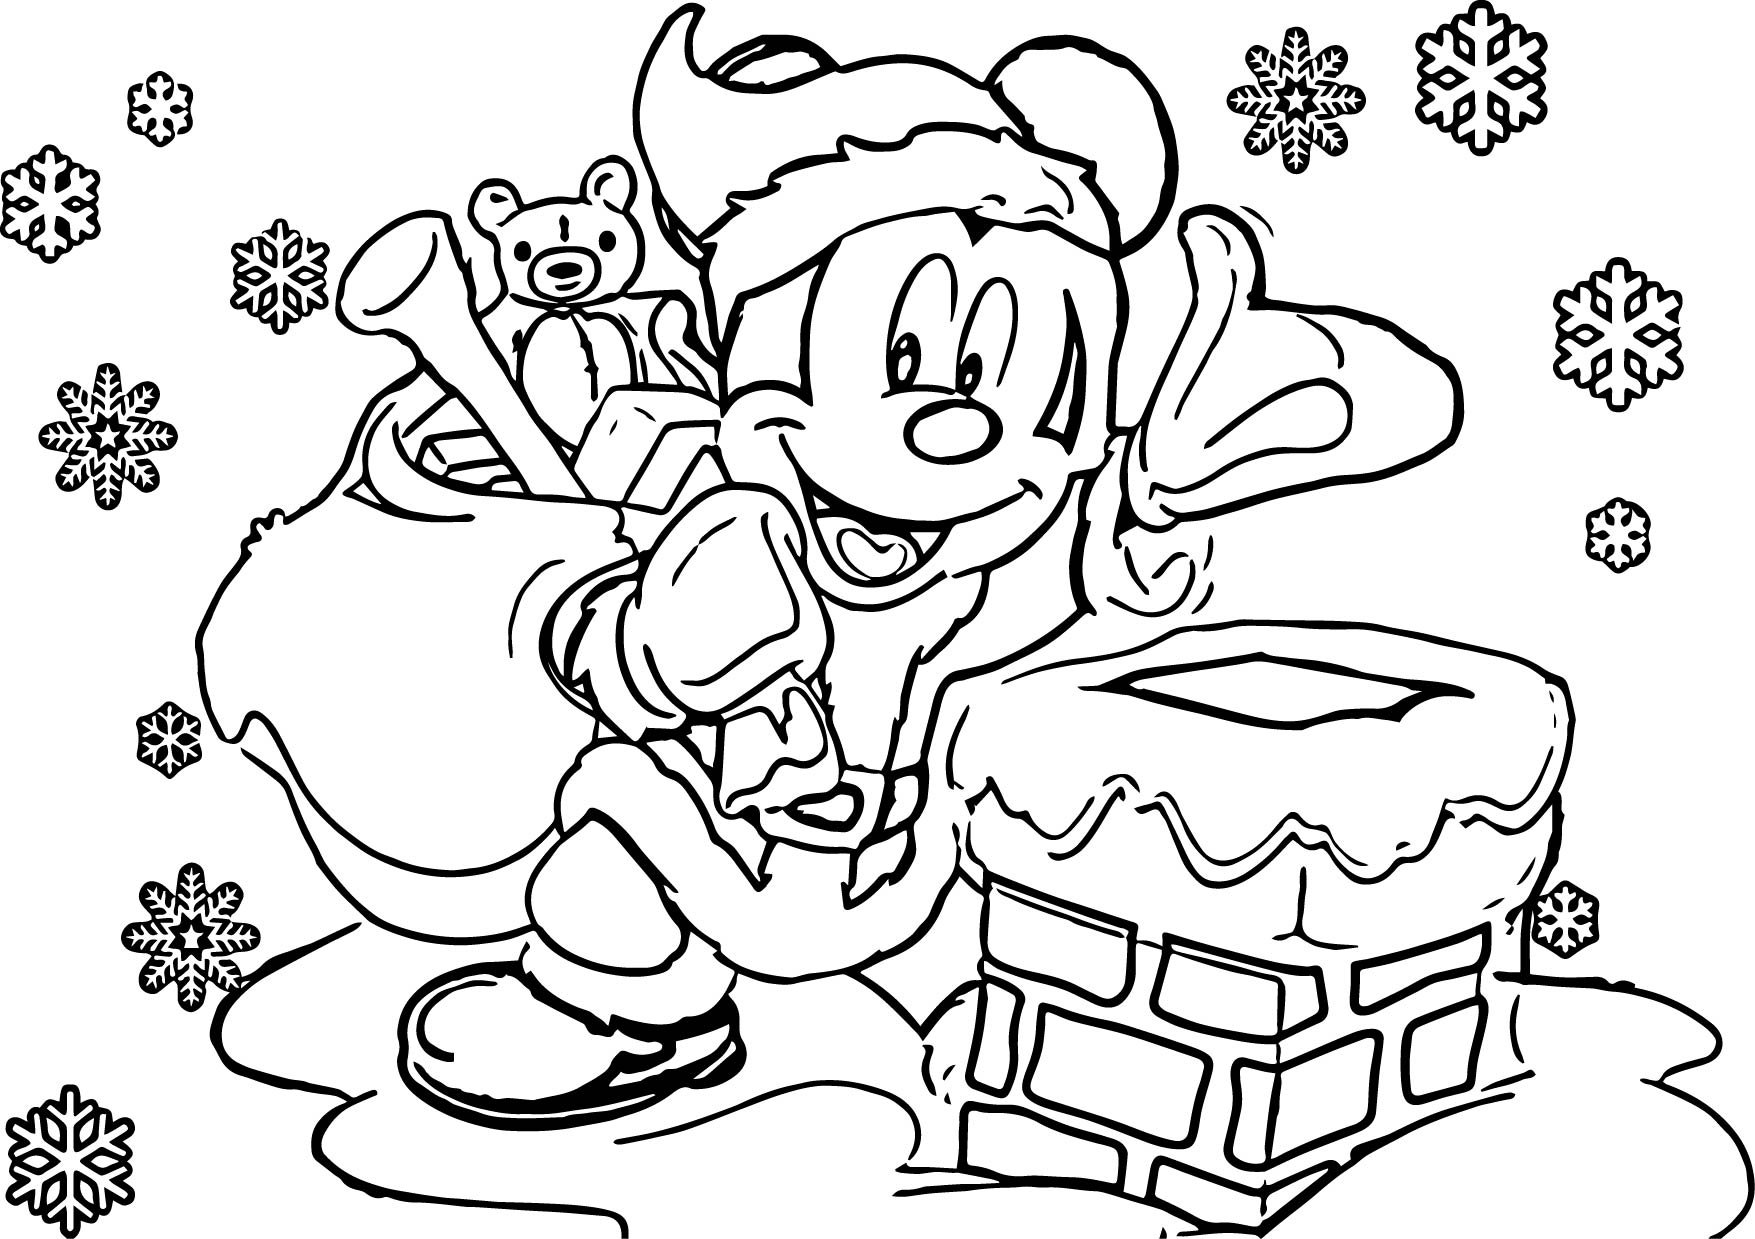 disney coloring book pages - disney christmas coloring page